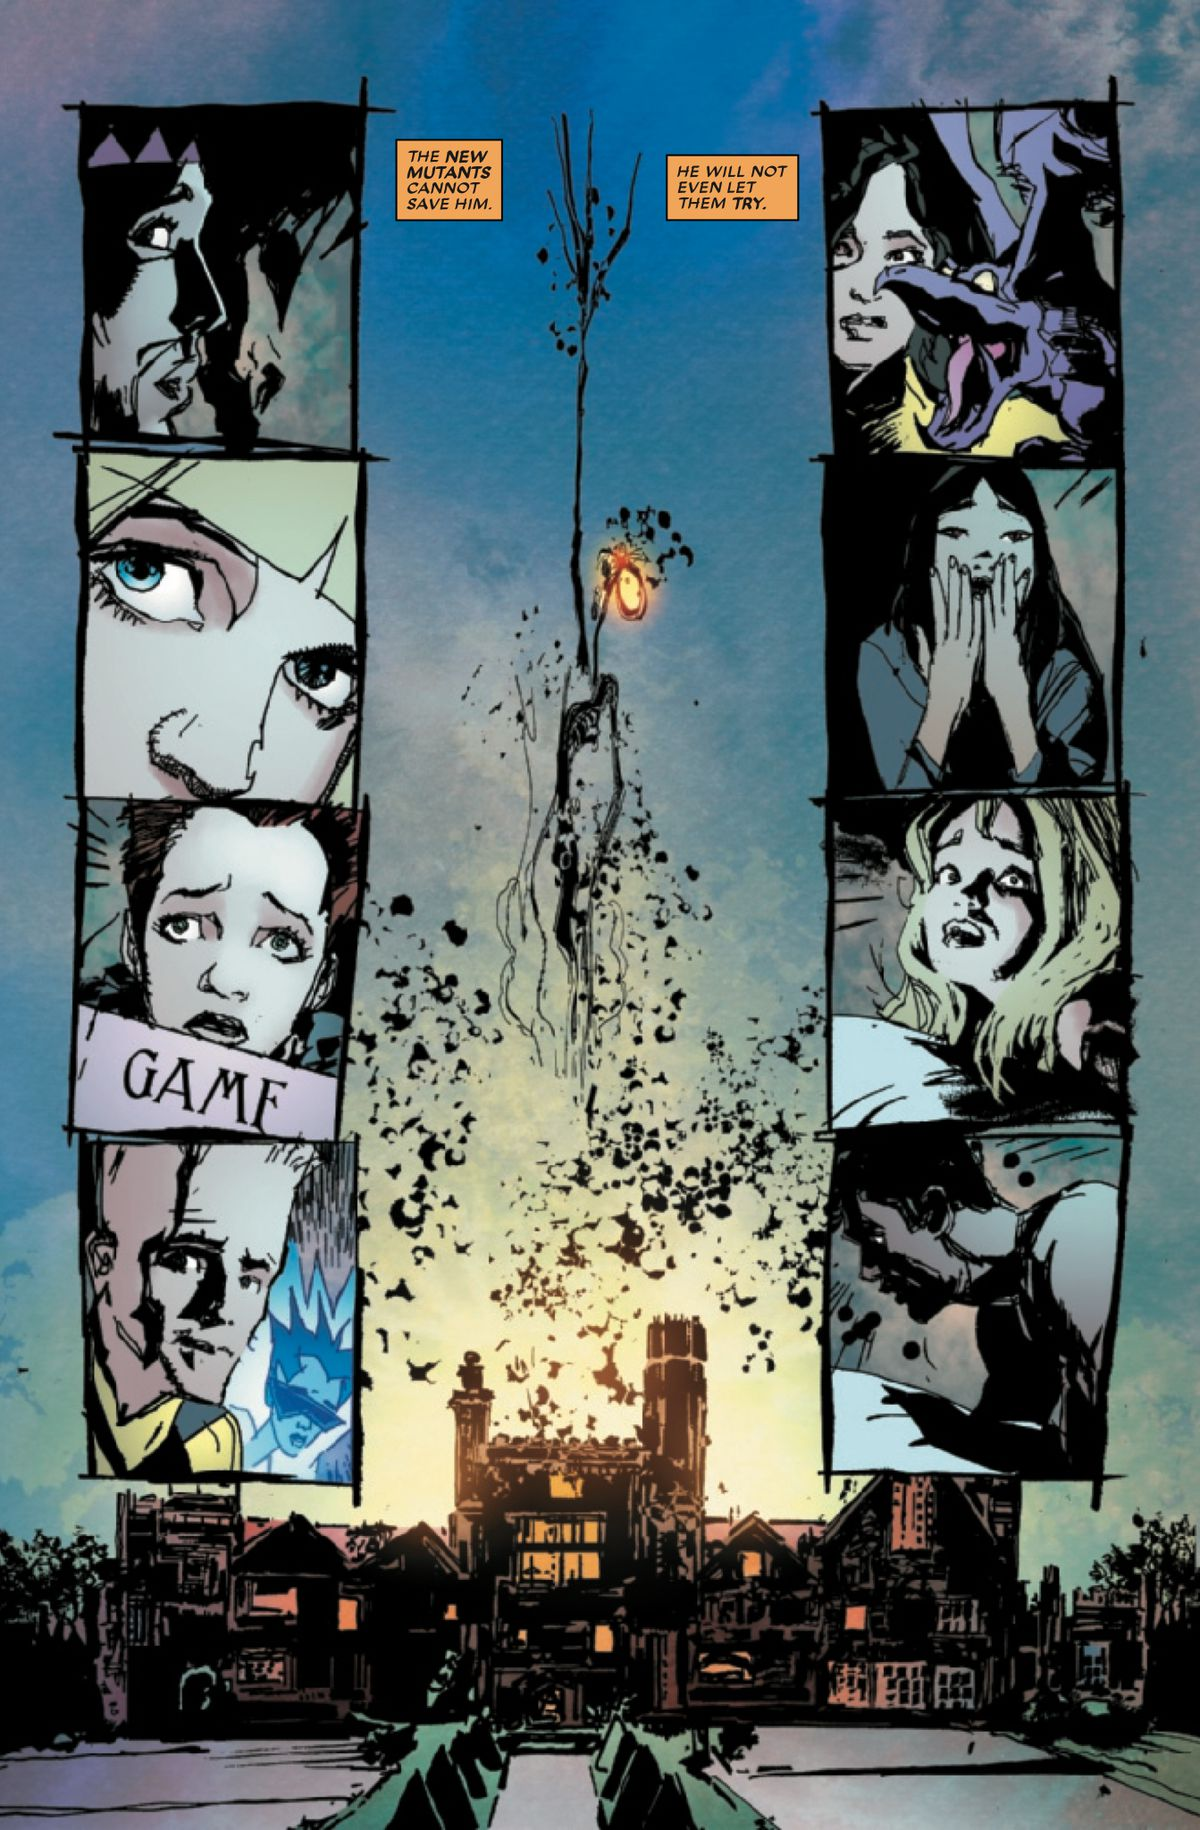 Warlock rises from the structure of the Xavier mansion as the New Mutants react with concern, in New Mutants: War Children #1, Marvel Comics (2019).